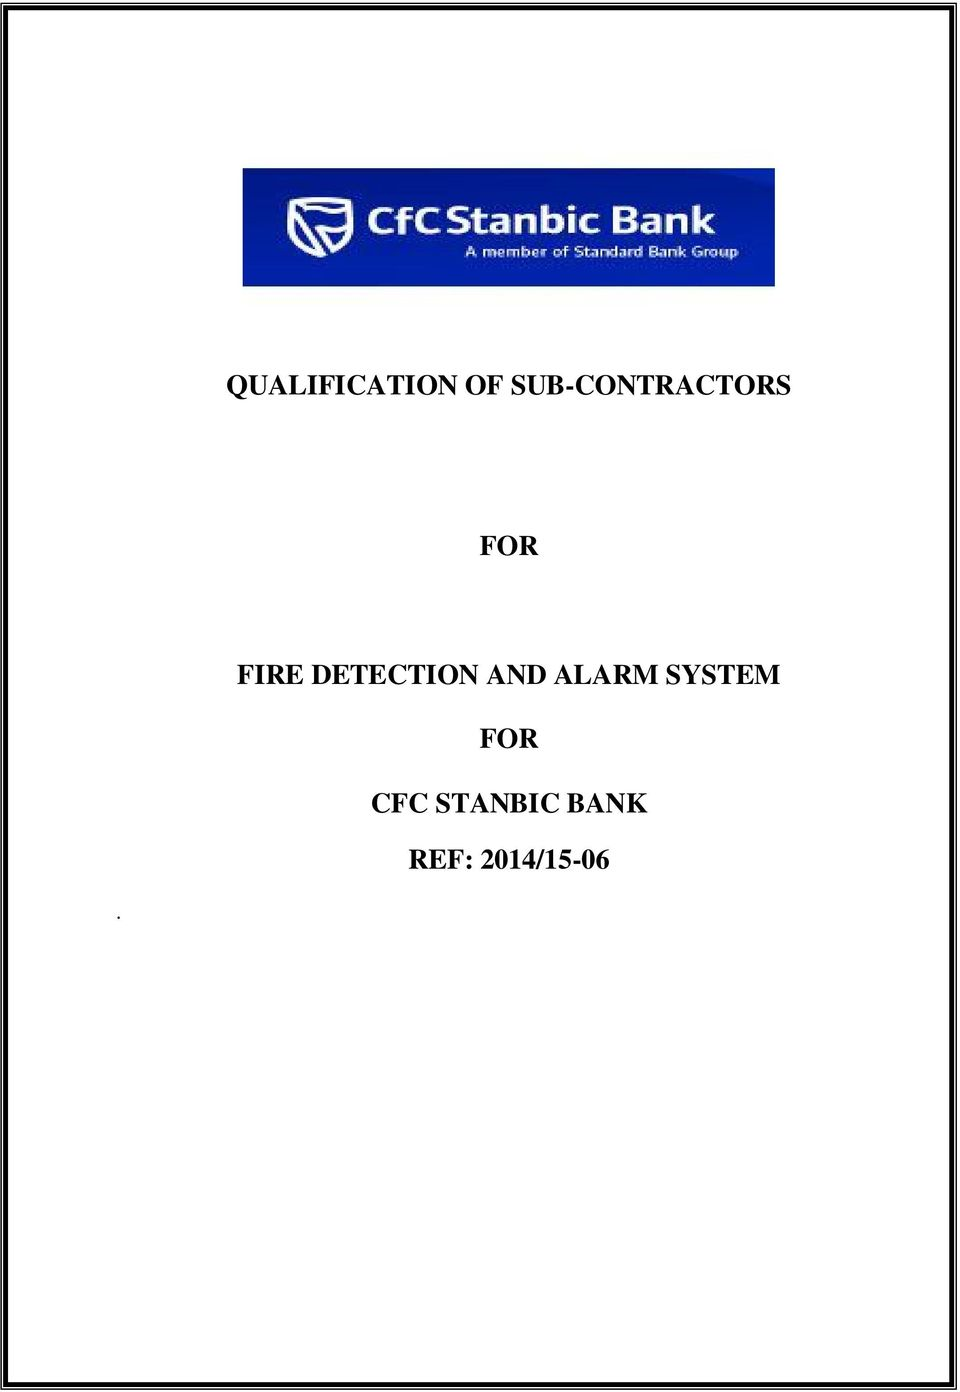 DETECTION AND ALARM SYSTEM